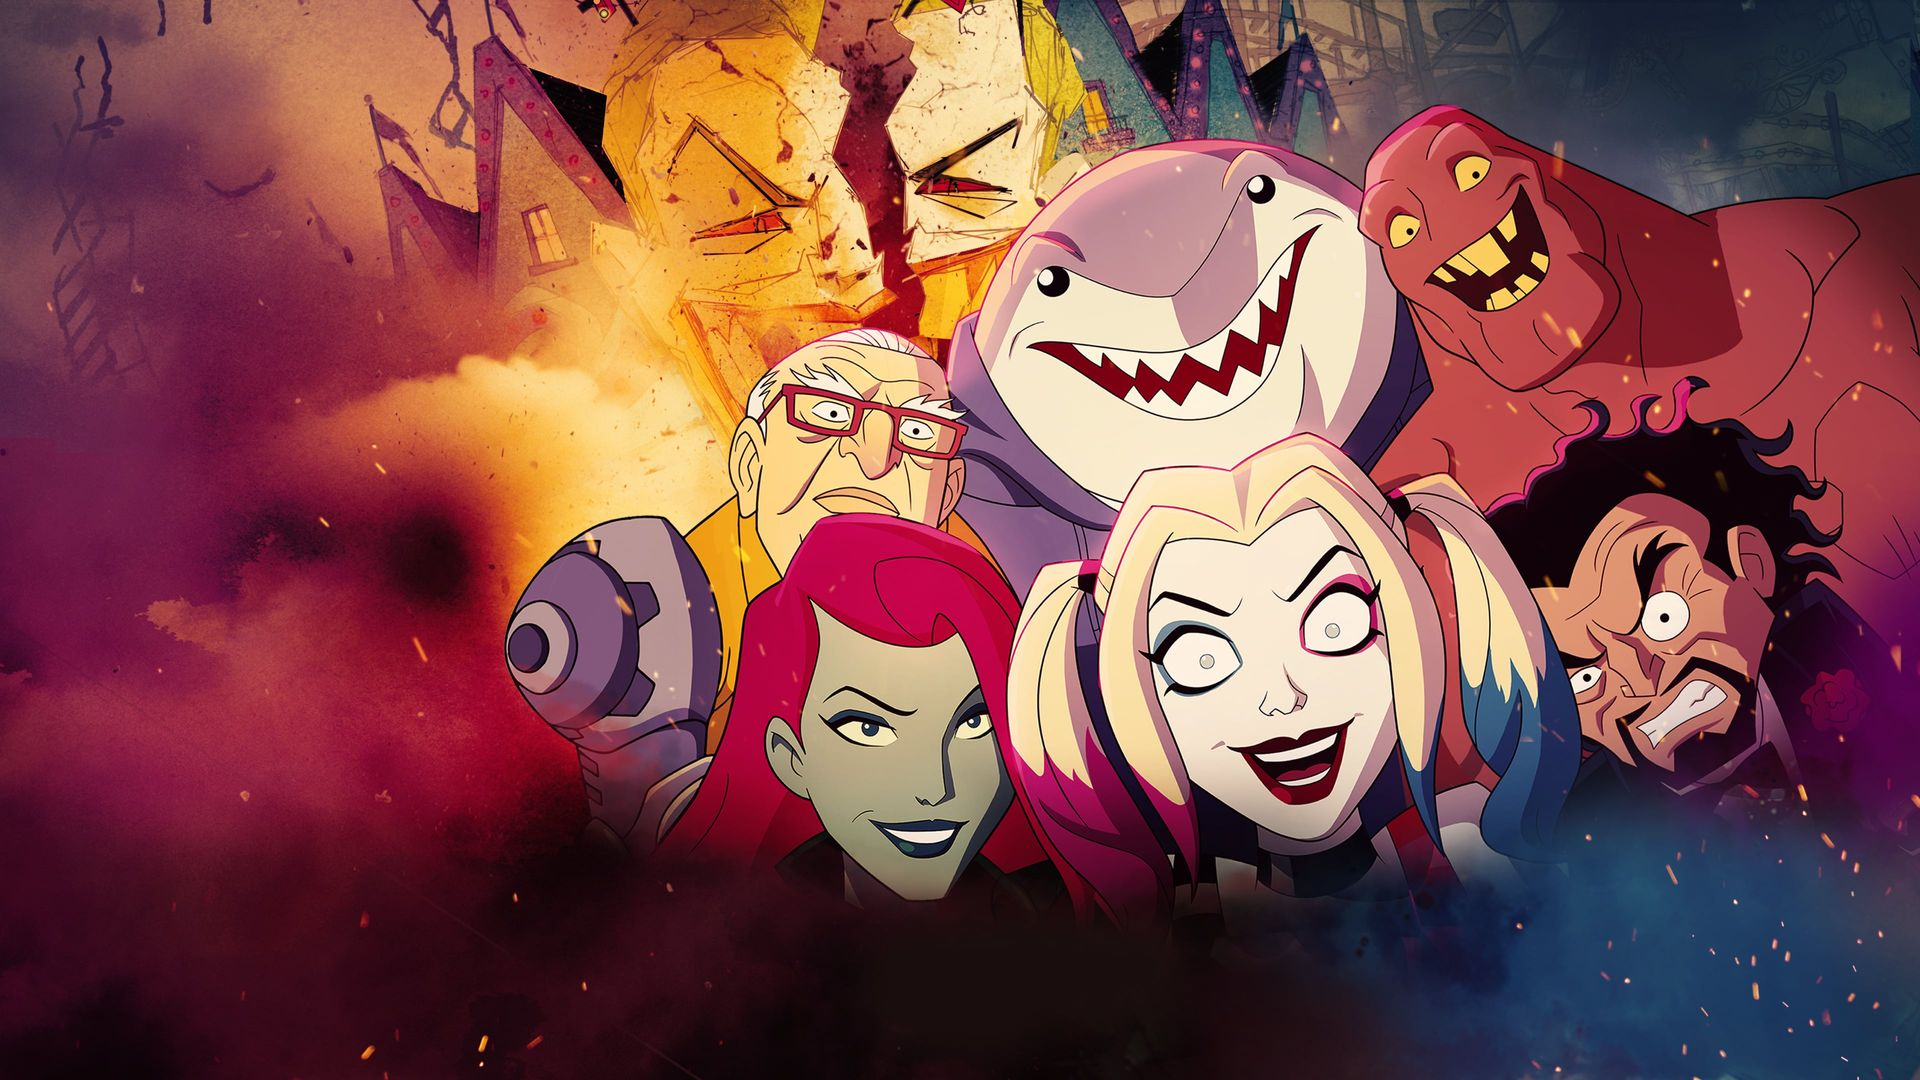 Everything About The New Harley Quinn Series Hd Wallpapers Supertab Themes